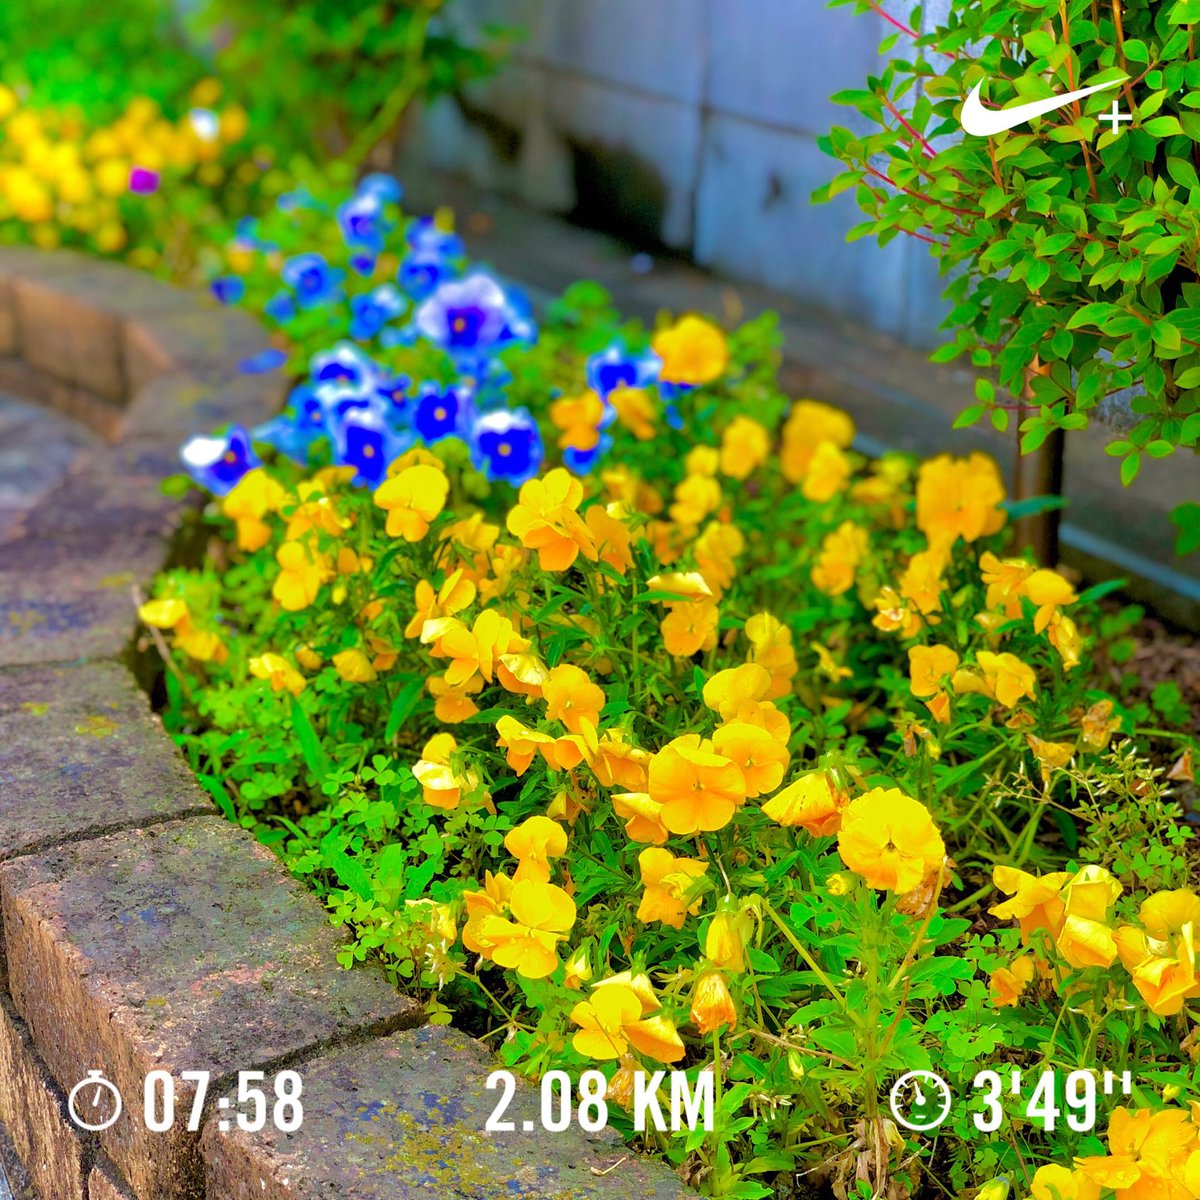 Ran evening with she and Nike⁠ Run Club. at Last, Summer has come. Let's bootcamp for Autumn harvest Sep 15, so #justdoit now! pic.twitter.com/Ft6nFKPK9t